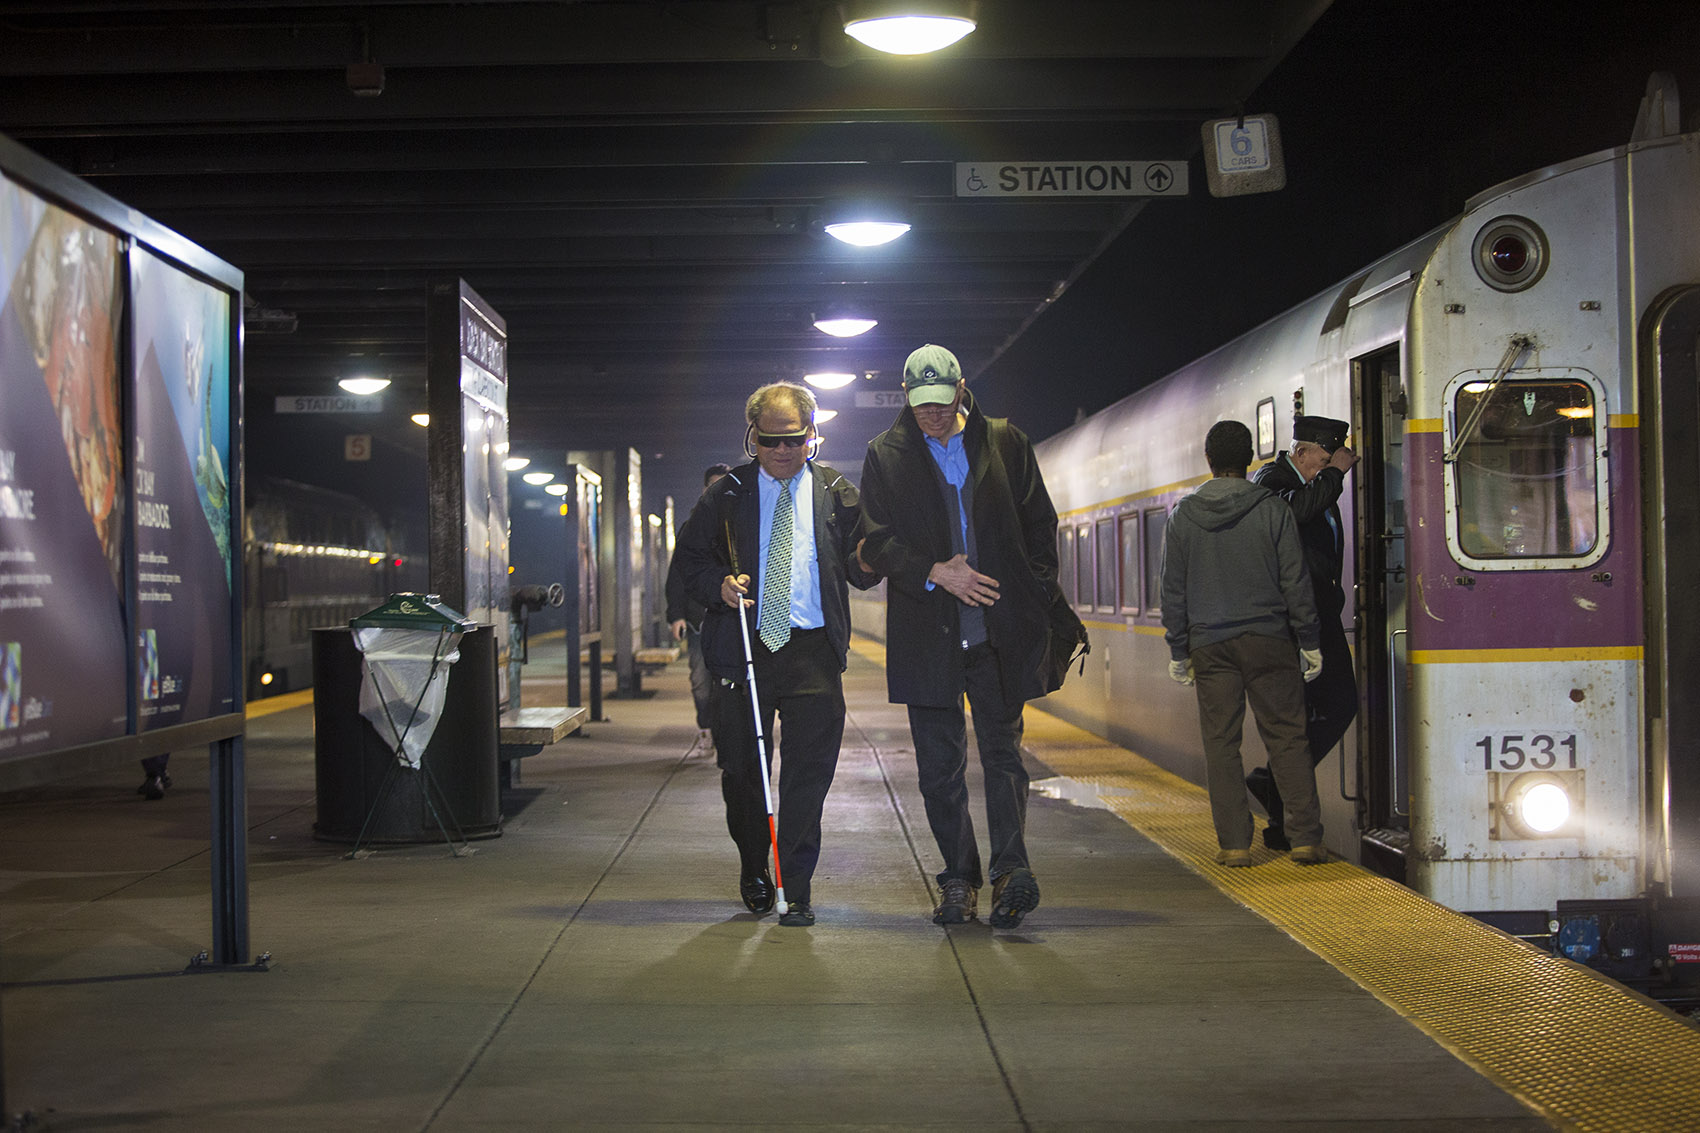 Whenever they're on the same commuter rail train, David Hill, right, meets Blair Wong on the platform at Back Bay station and walks him to Benjamin Franklin Institute of Technology. (Jesse Costa/WBUR)